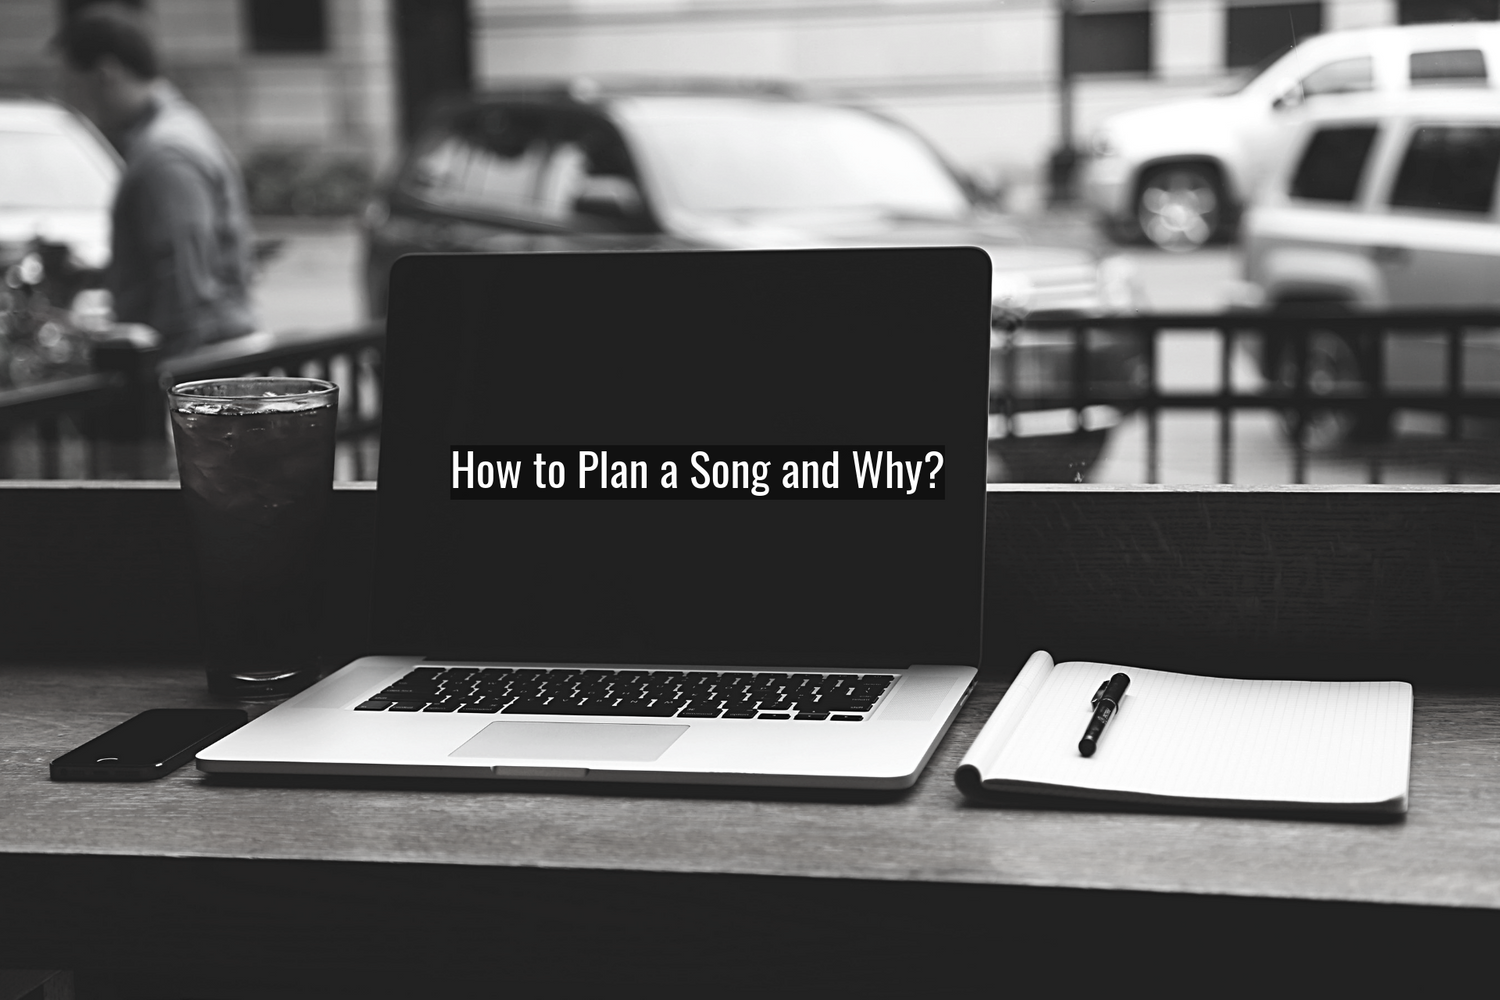 How to Plan a Song and Why